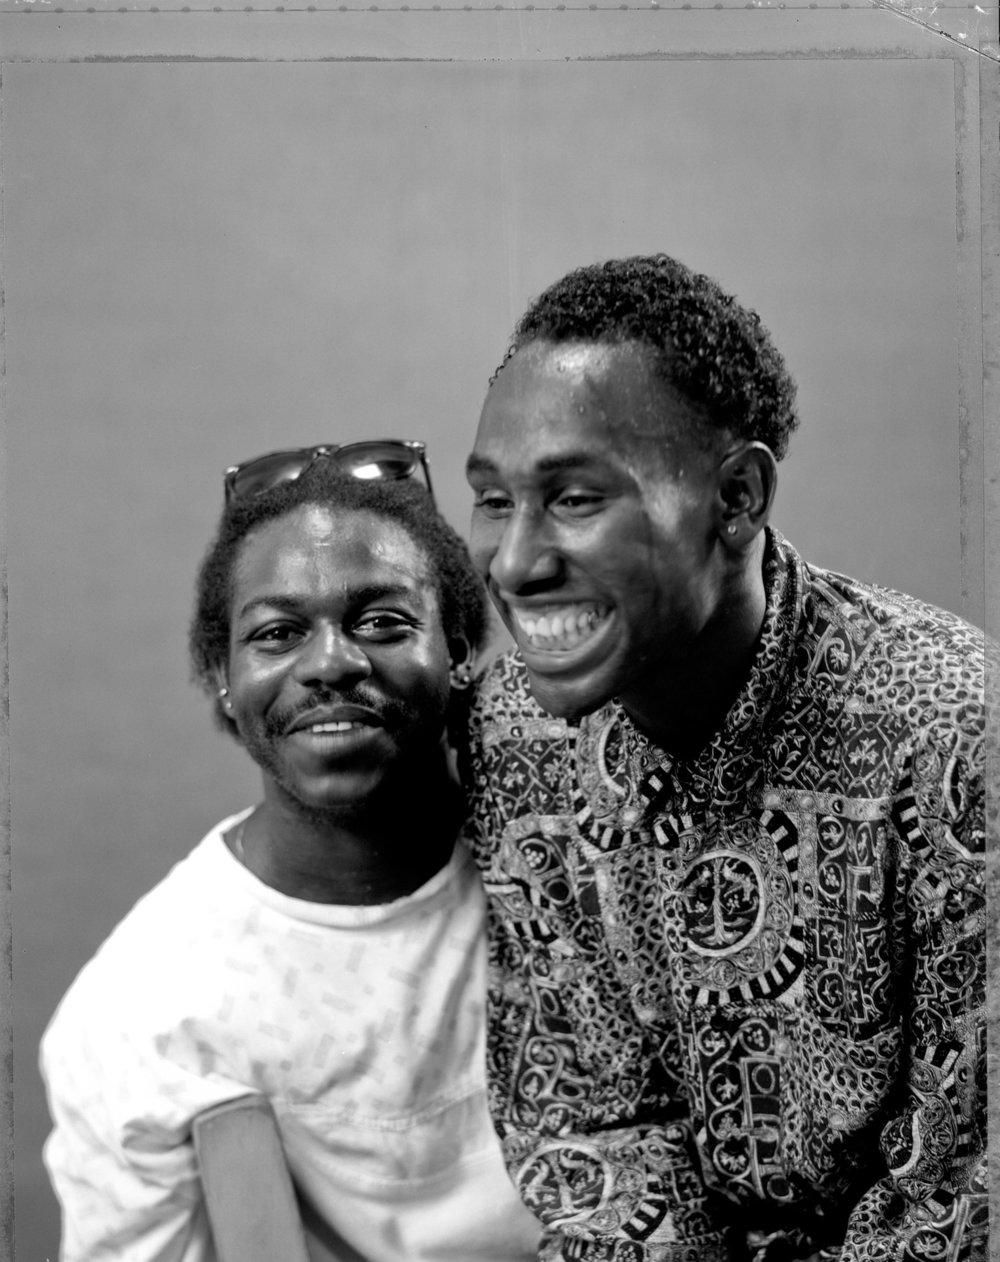 Jeannie O'Connor,  Lovers Laughing, Oakland , 1988. Silver gelatin print, 4 x 5 inches.